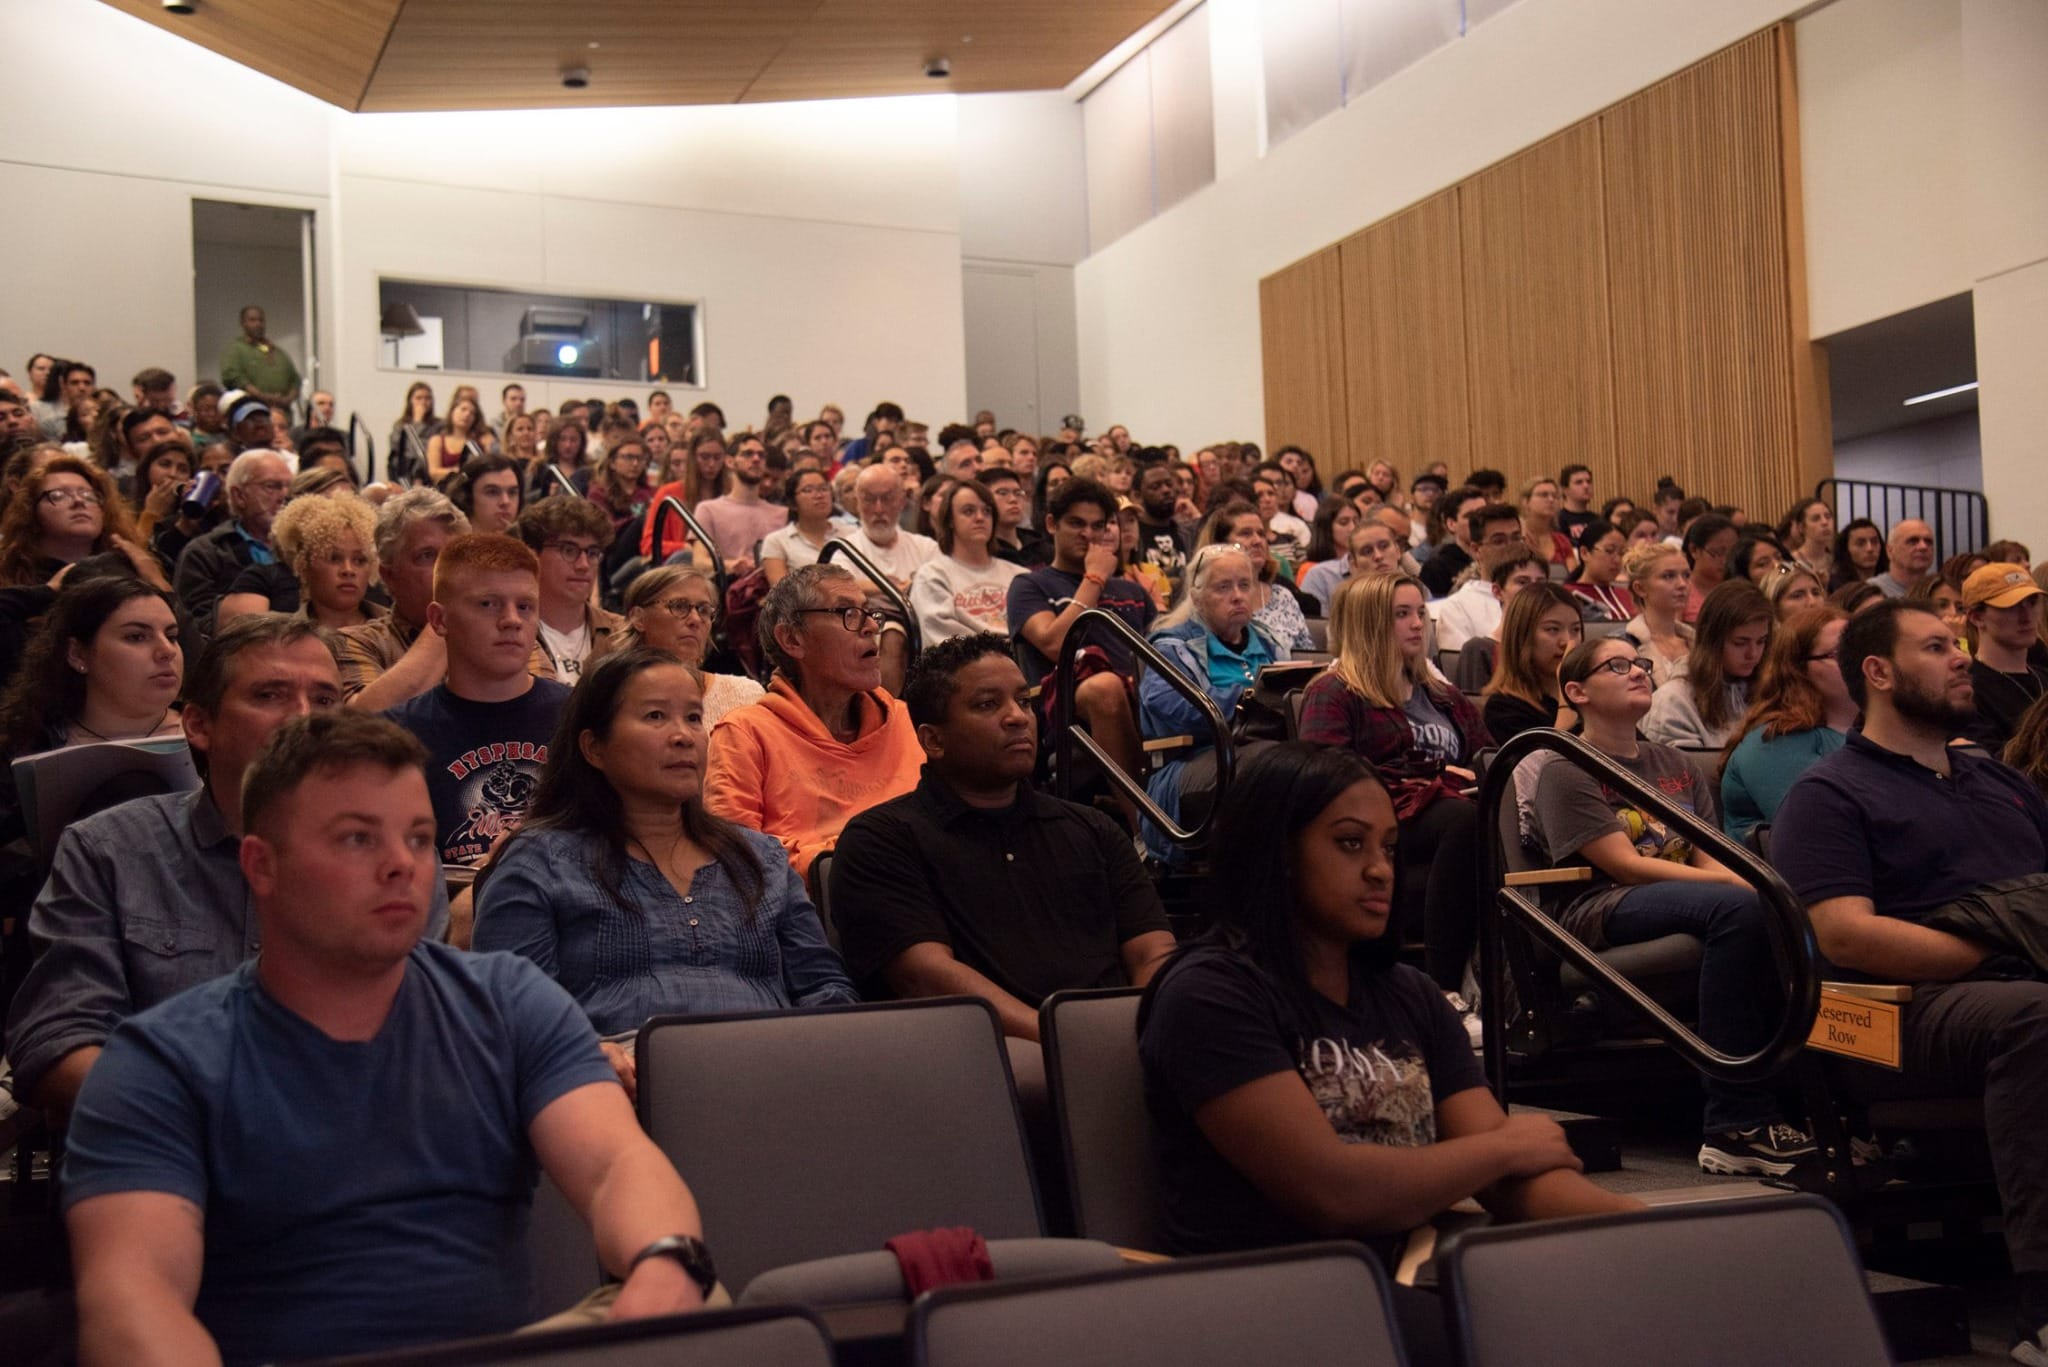 The 17th Annual Syracuse University Human Rights Film Festival